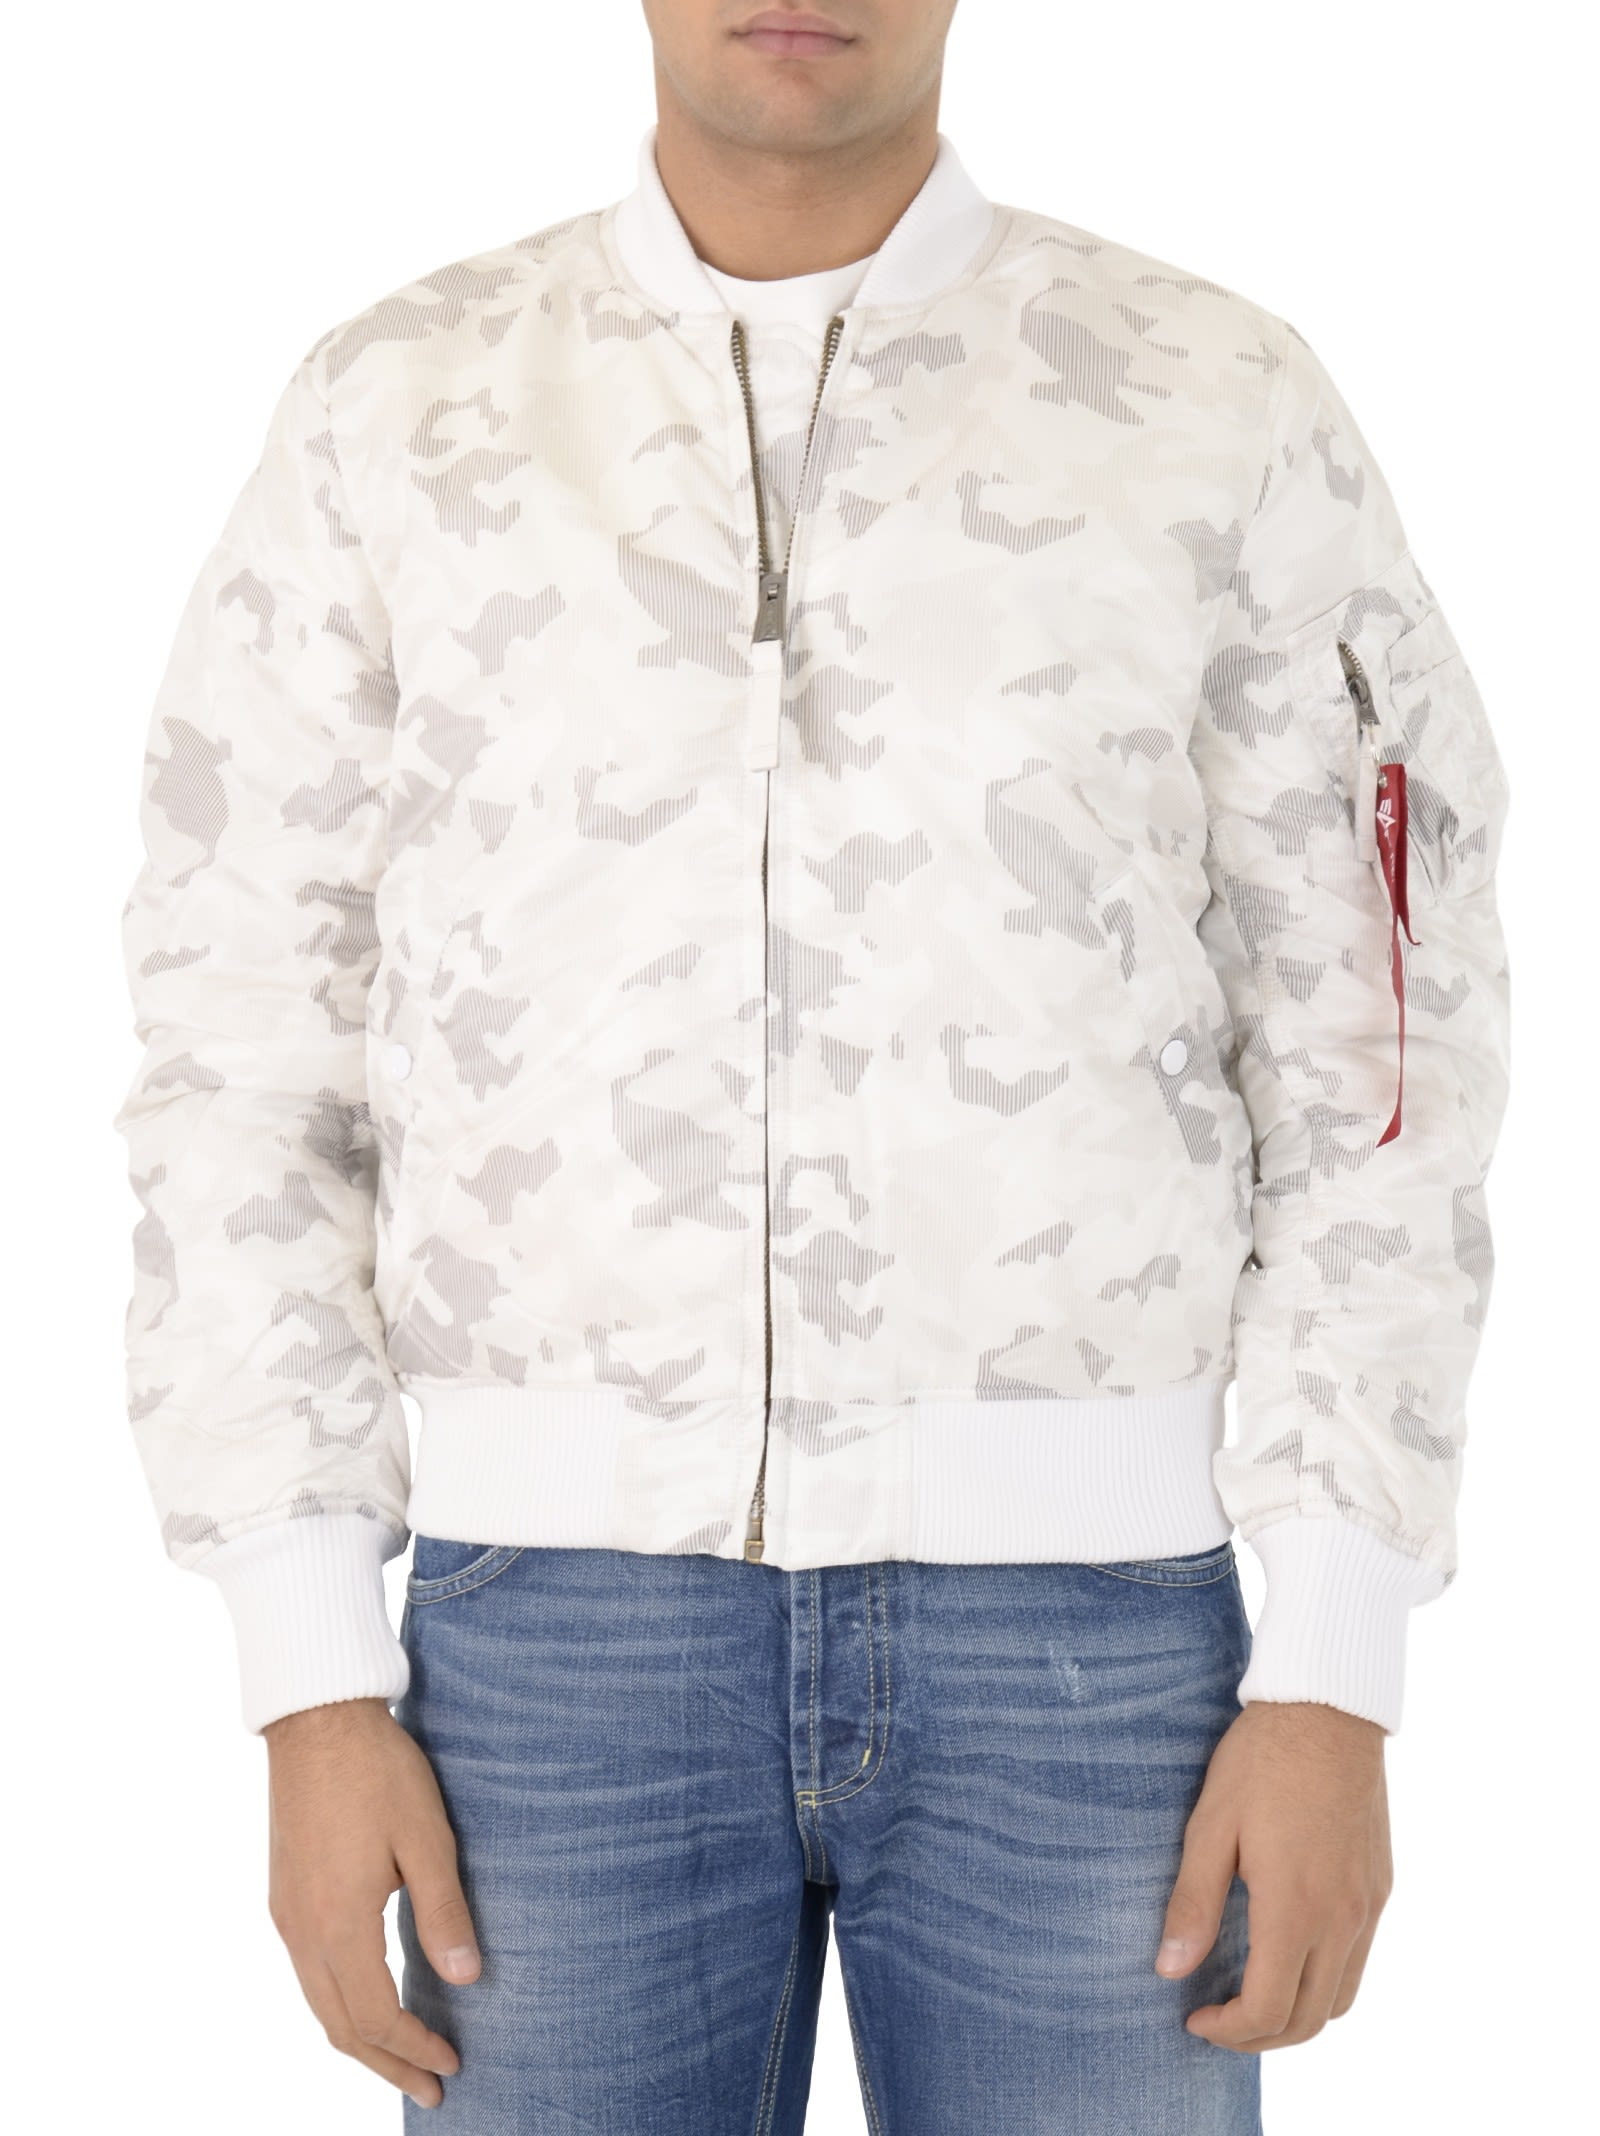 Alpha Industries White Camo Cropped Bomber Jacket